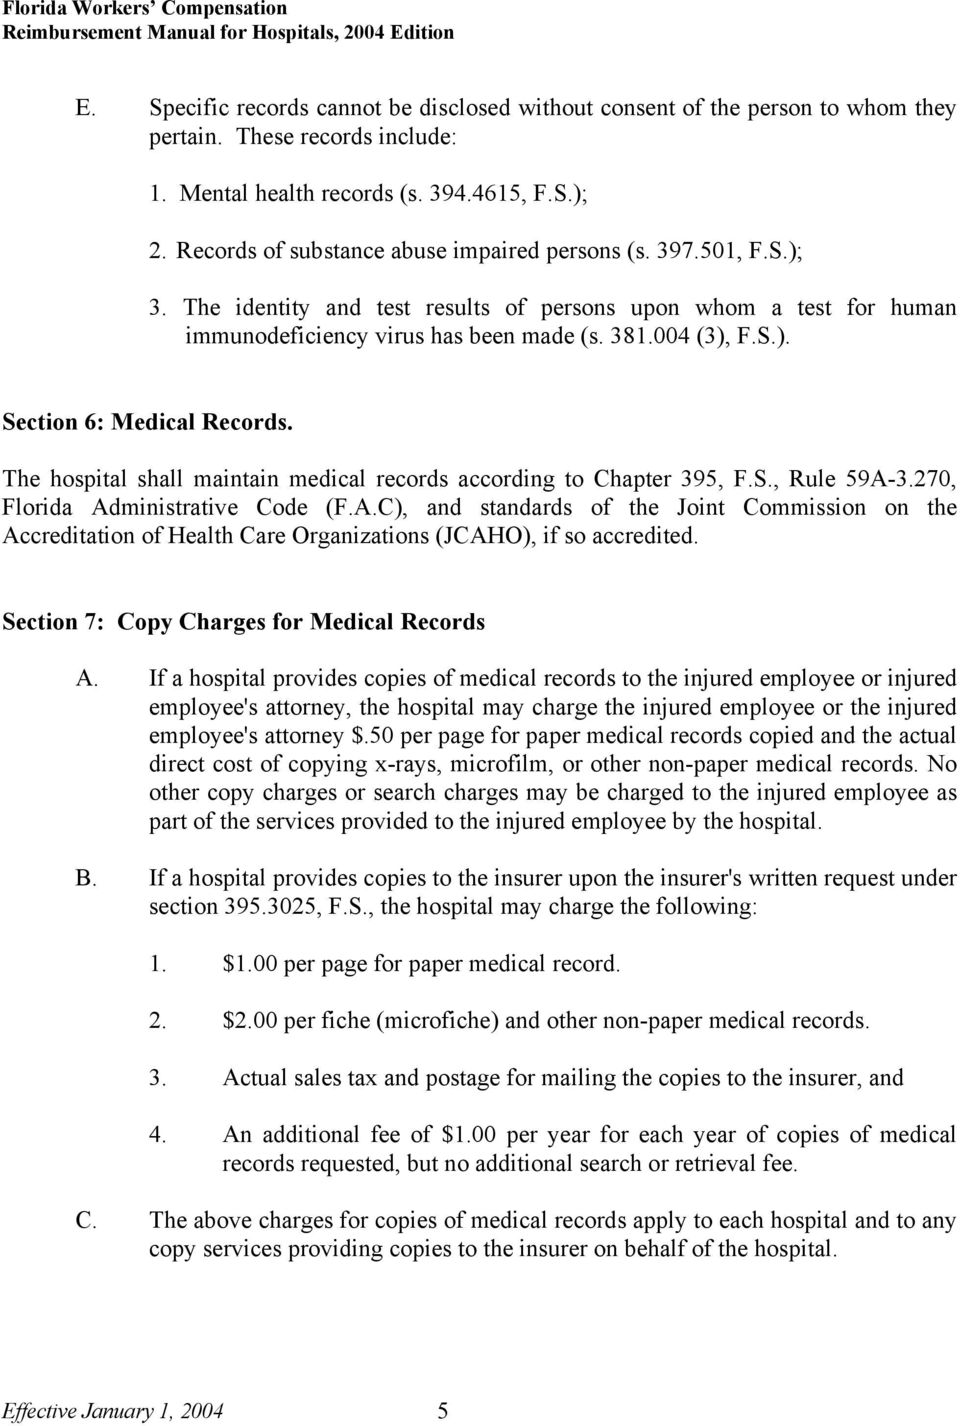 The hospital shall maintain medical records according to Chapter 395, F.S., Rule 59A-